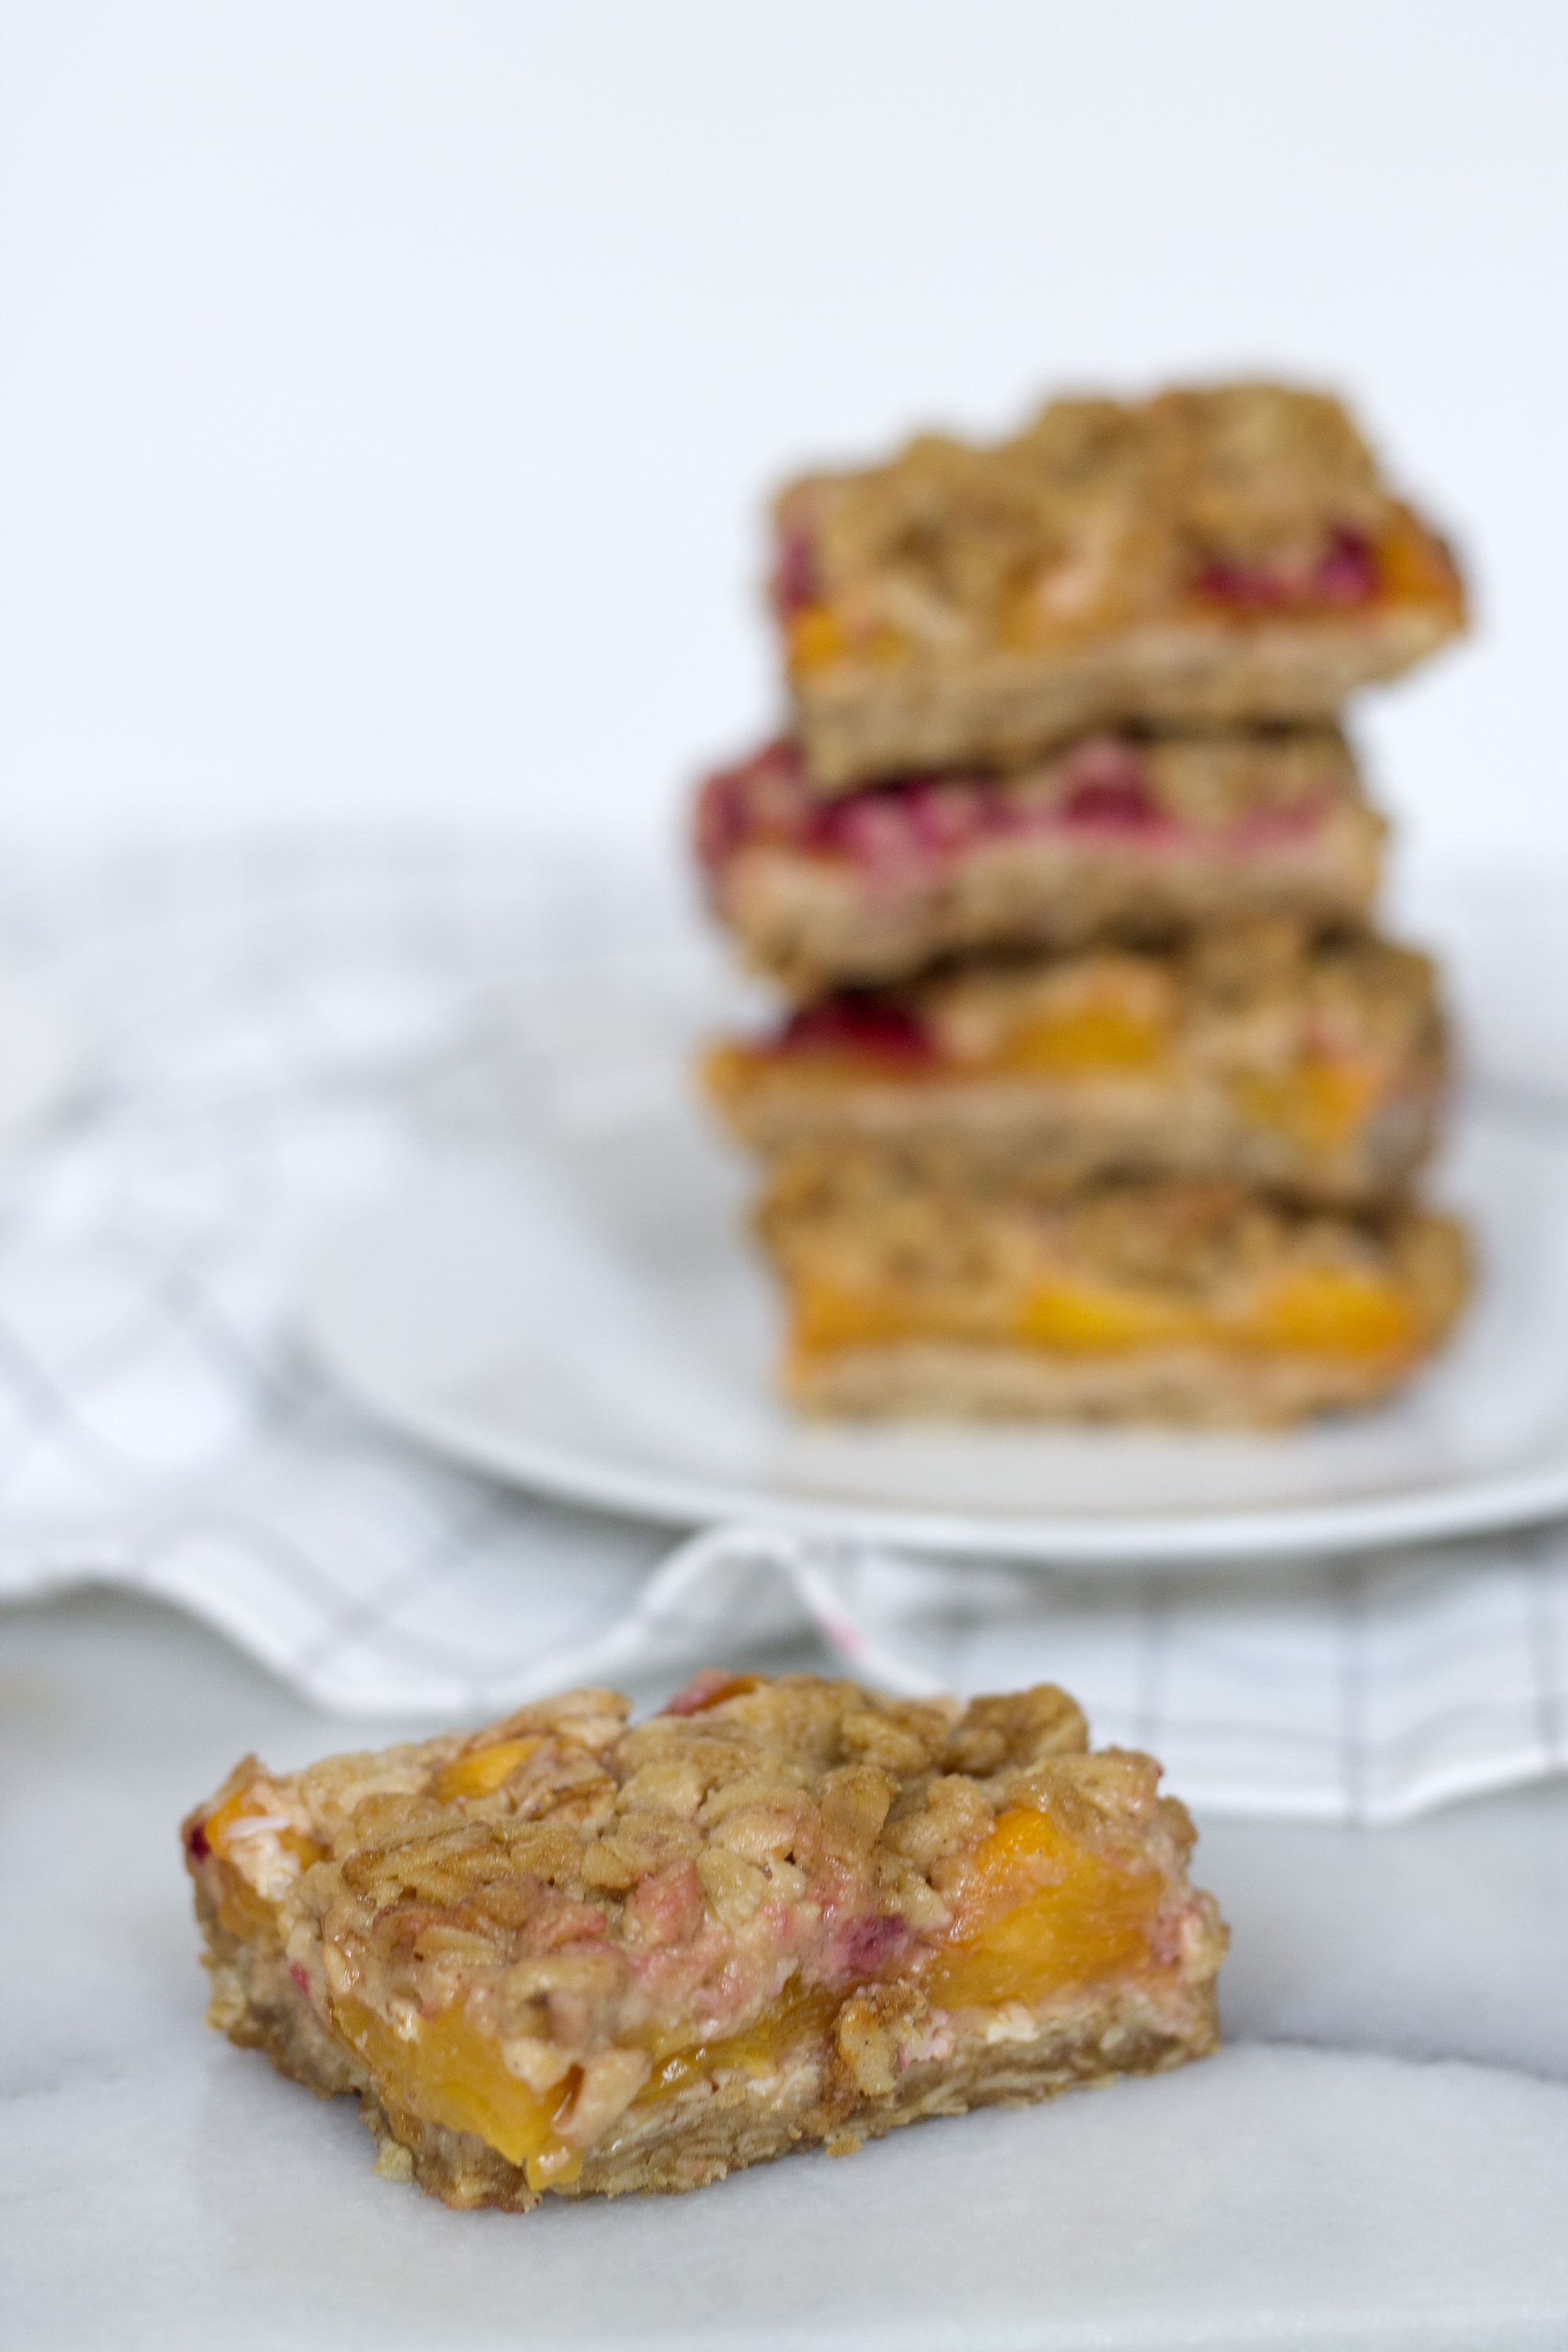 Fruit bars with peaches and raspberries via UnusuallyLovely.com